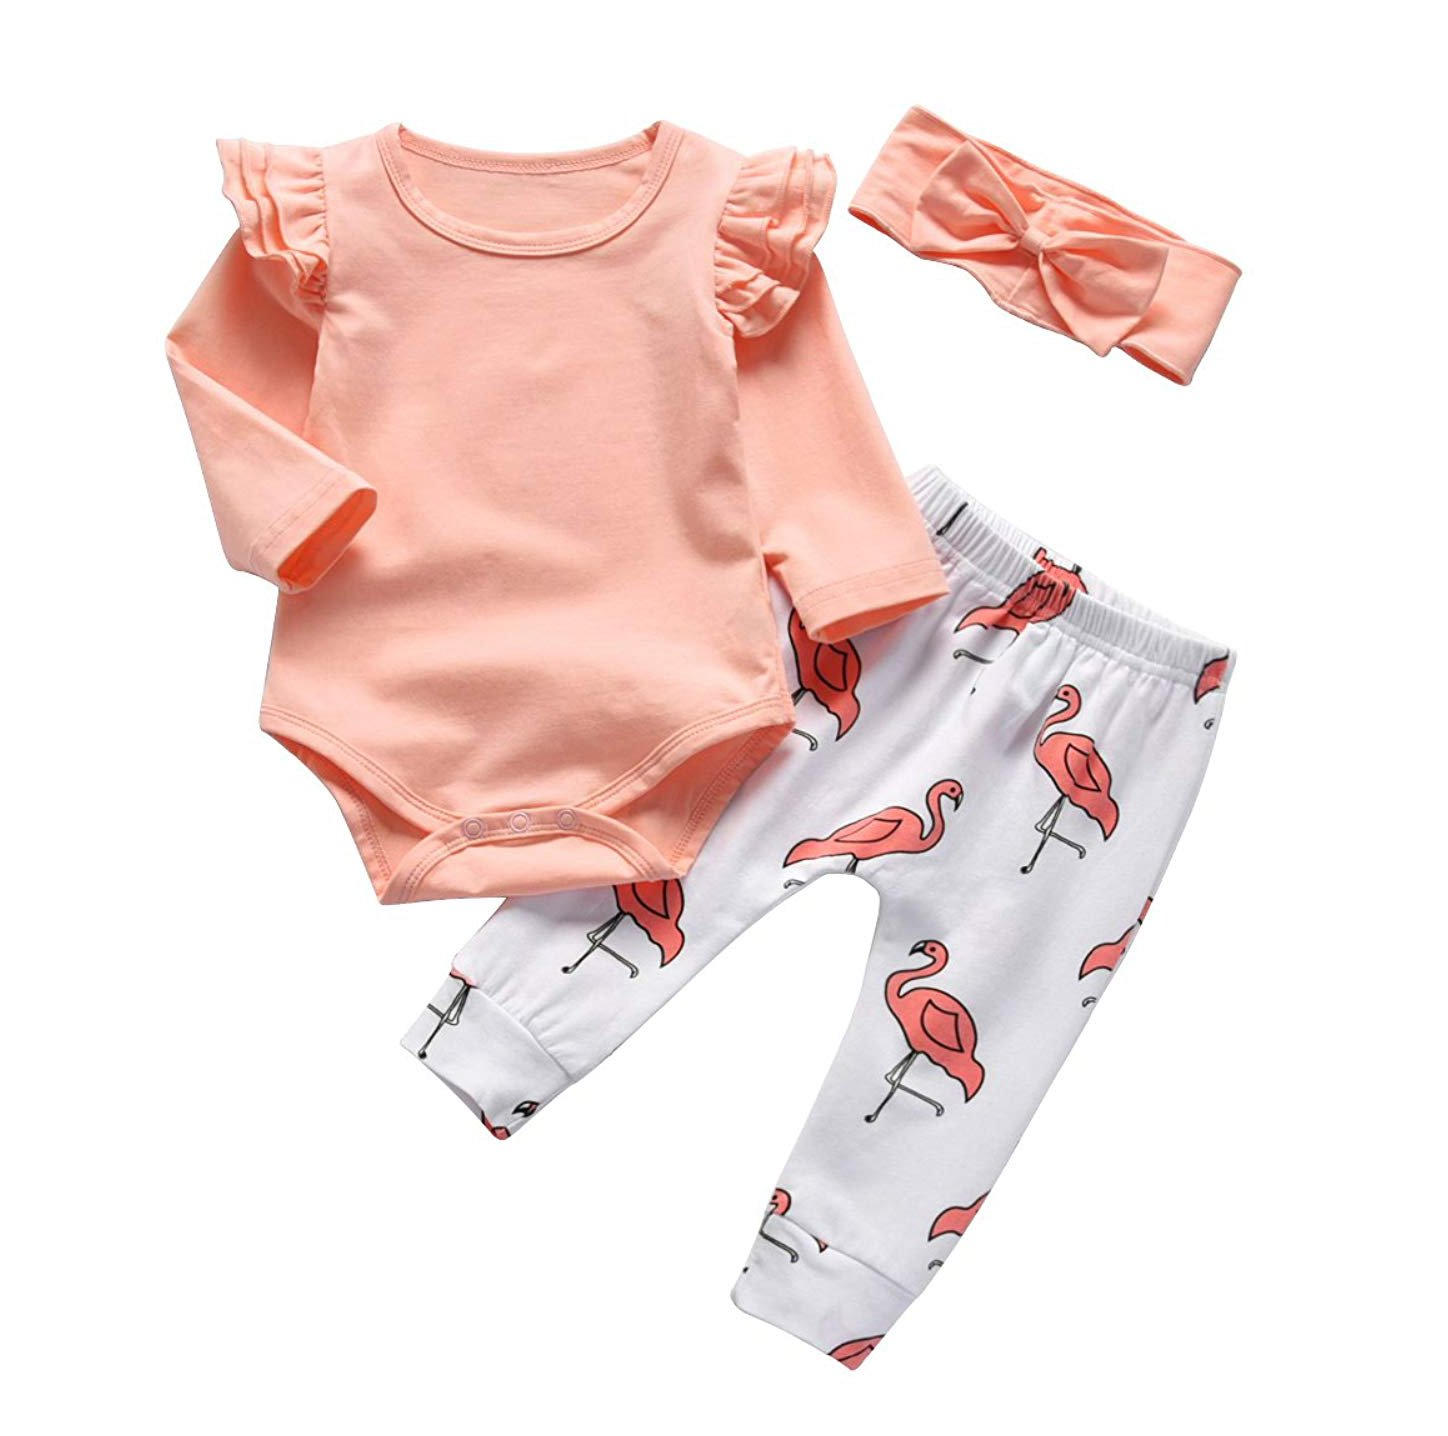 3Pcs Baby Girl Pink Ruffle Romper Long Sleeve Bodysuit Tops Flamingo Pants and Headband Outfits Set (Pink, 0-6 Months)